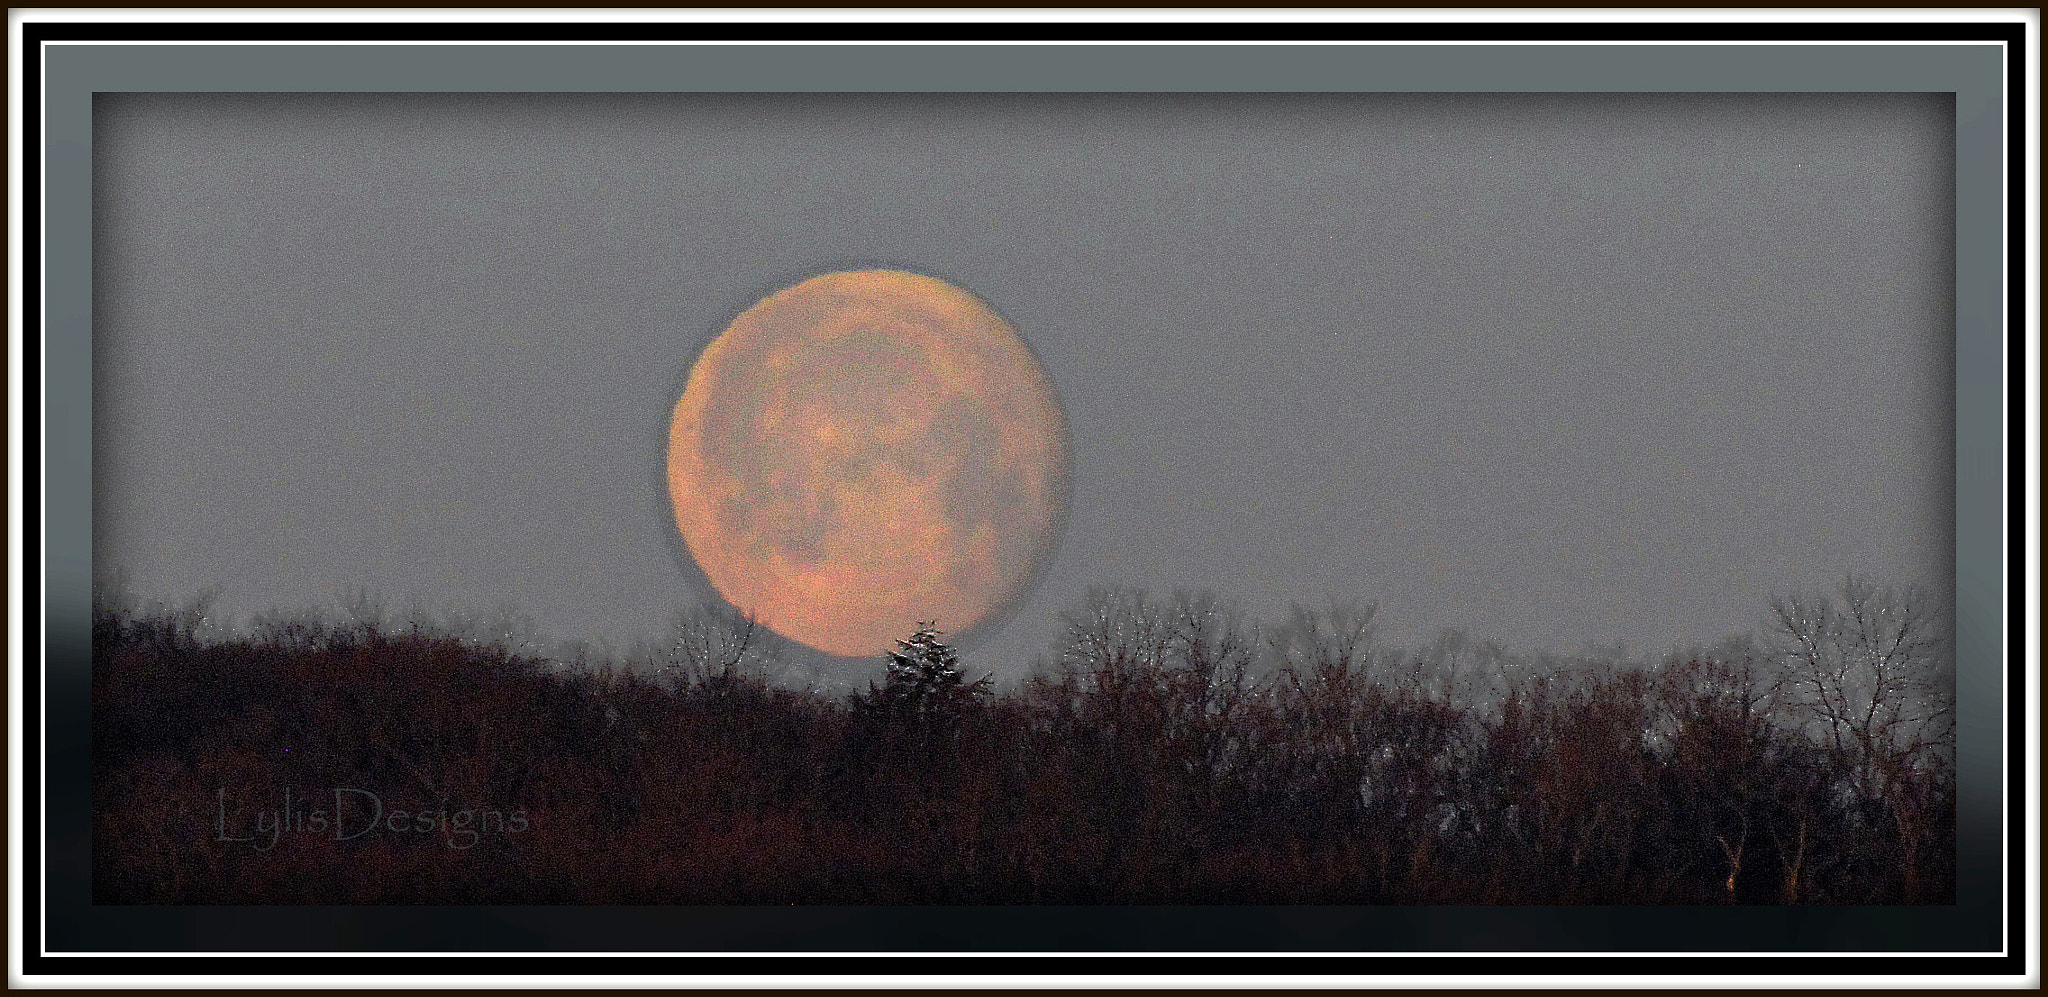 Photograph distant moonset by Lylis Designs on 500px